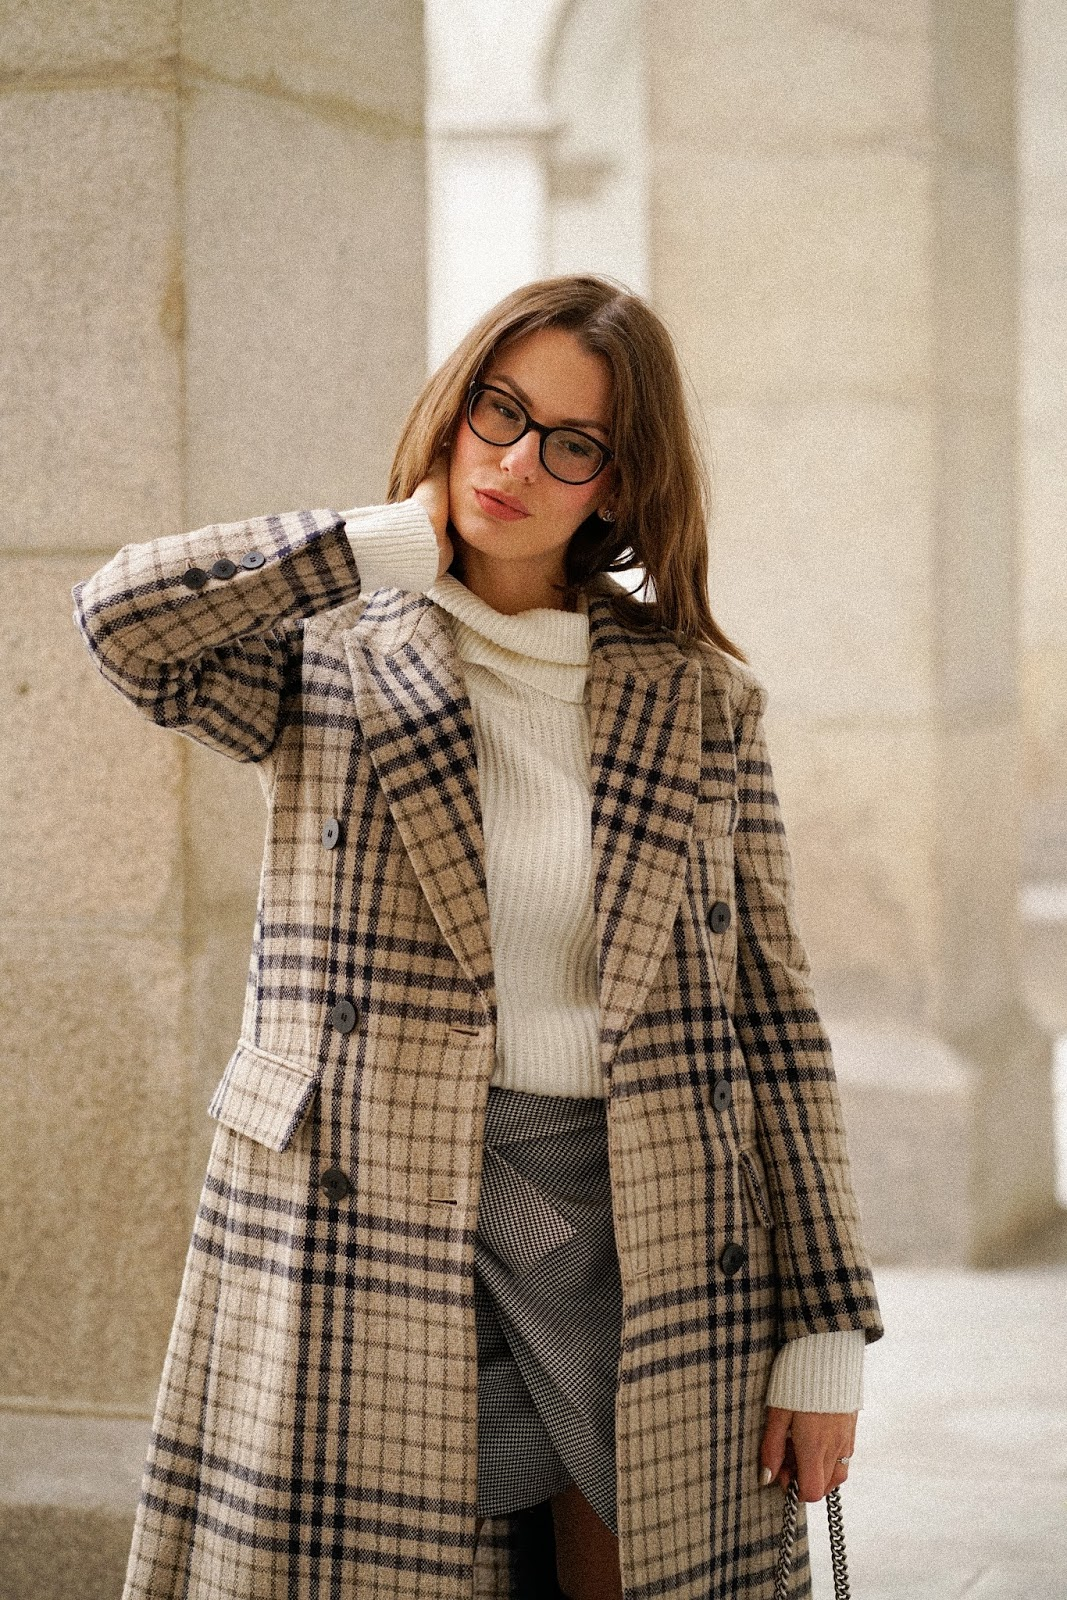 READY FOR AUTUMN: OVERKNEES AND CHECKS